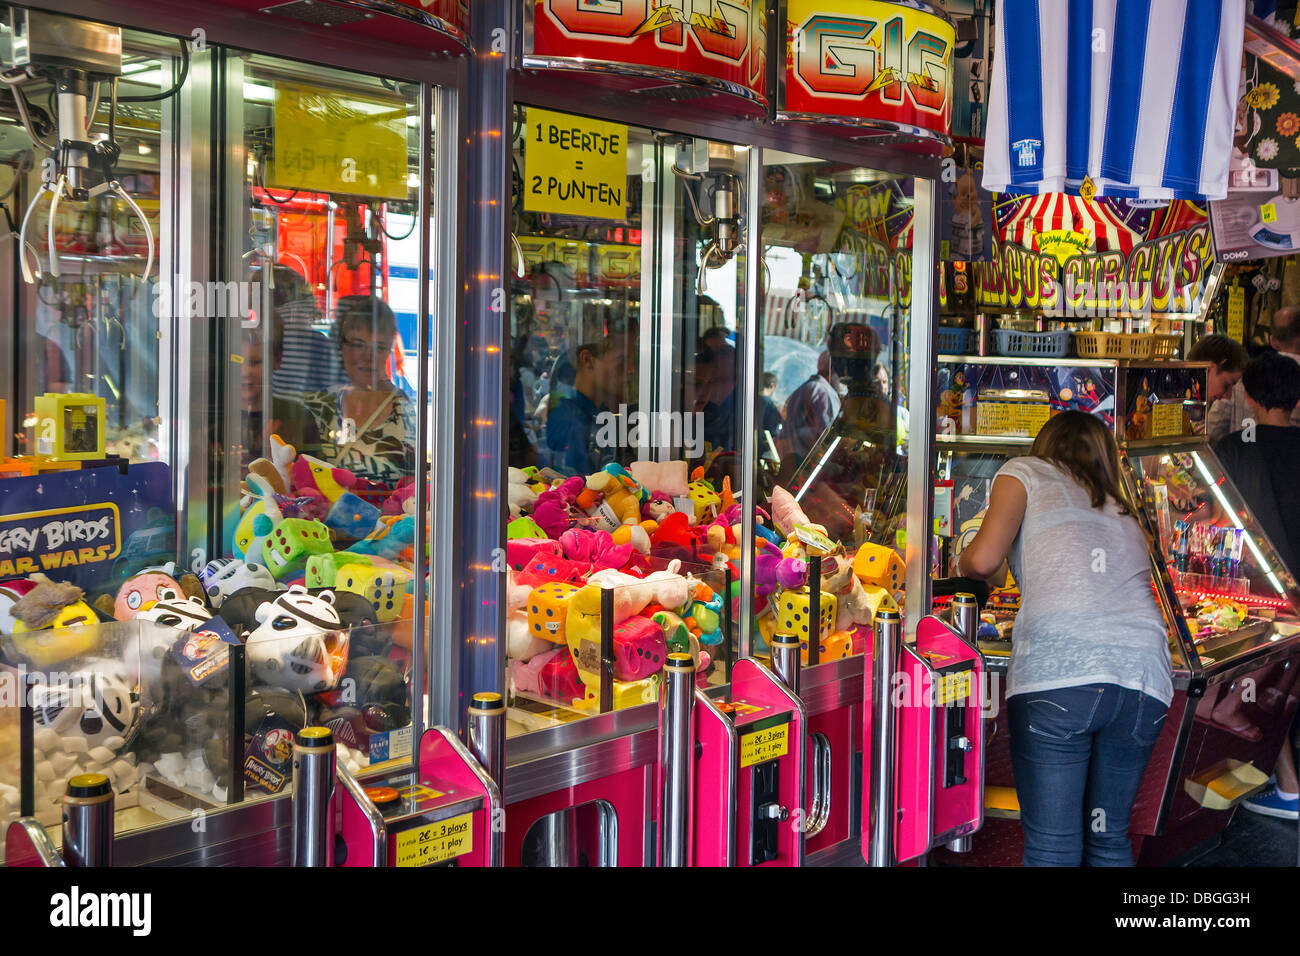 Arcade With Claw Crane Game Machines Filled With Toys And